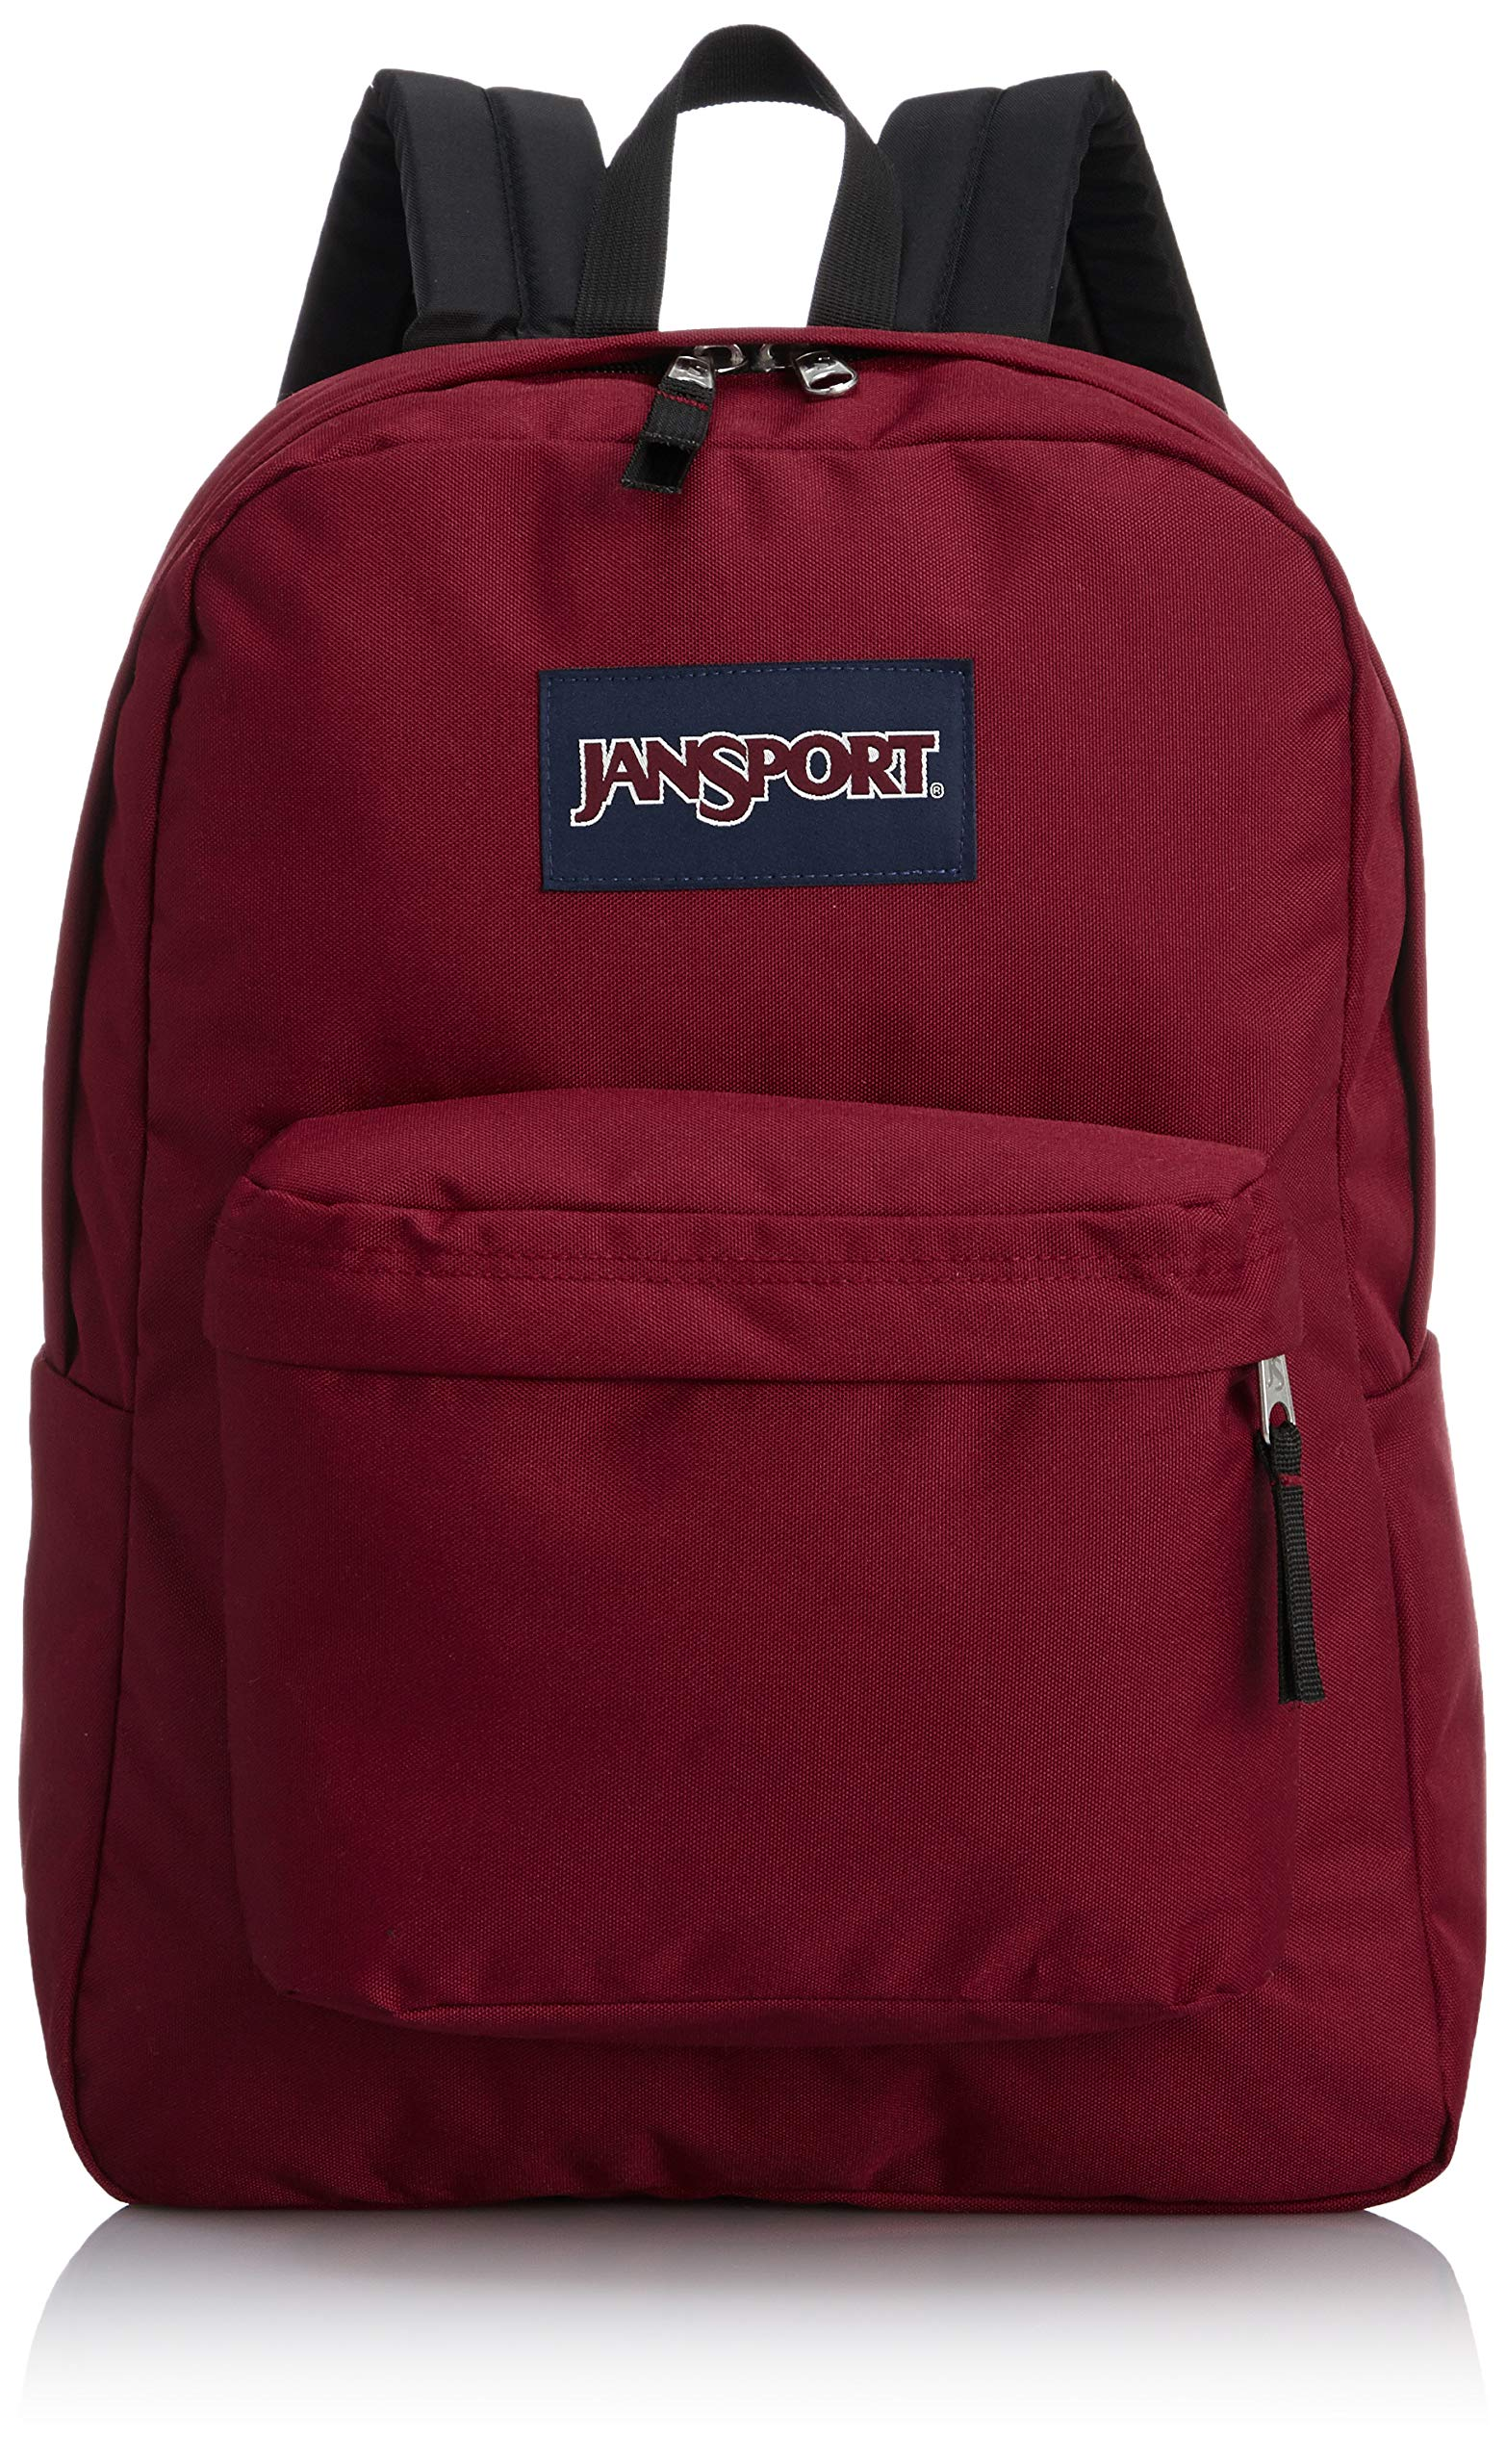 Jansport Backpacks Canada Walmart - Restaurant Grotto Ticino